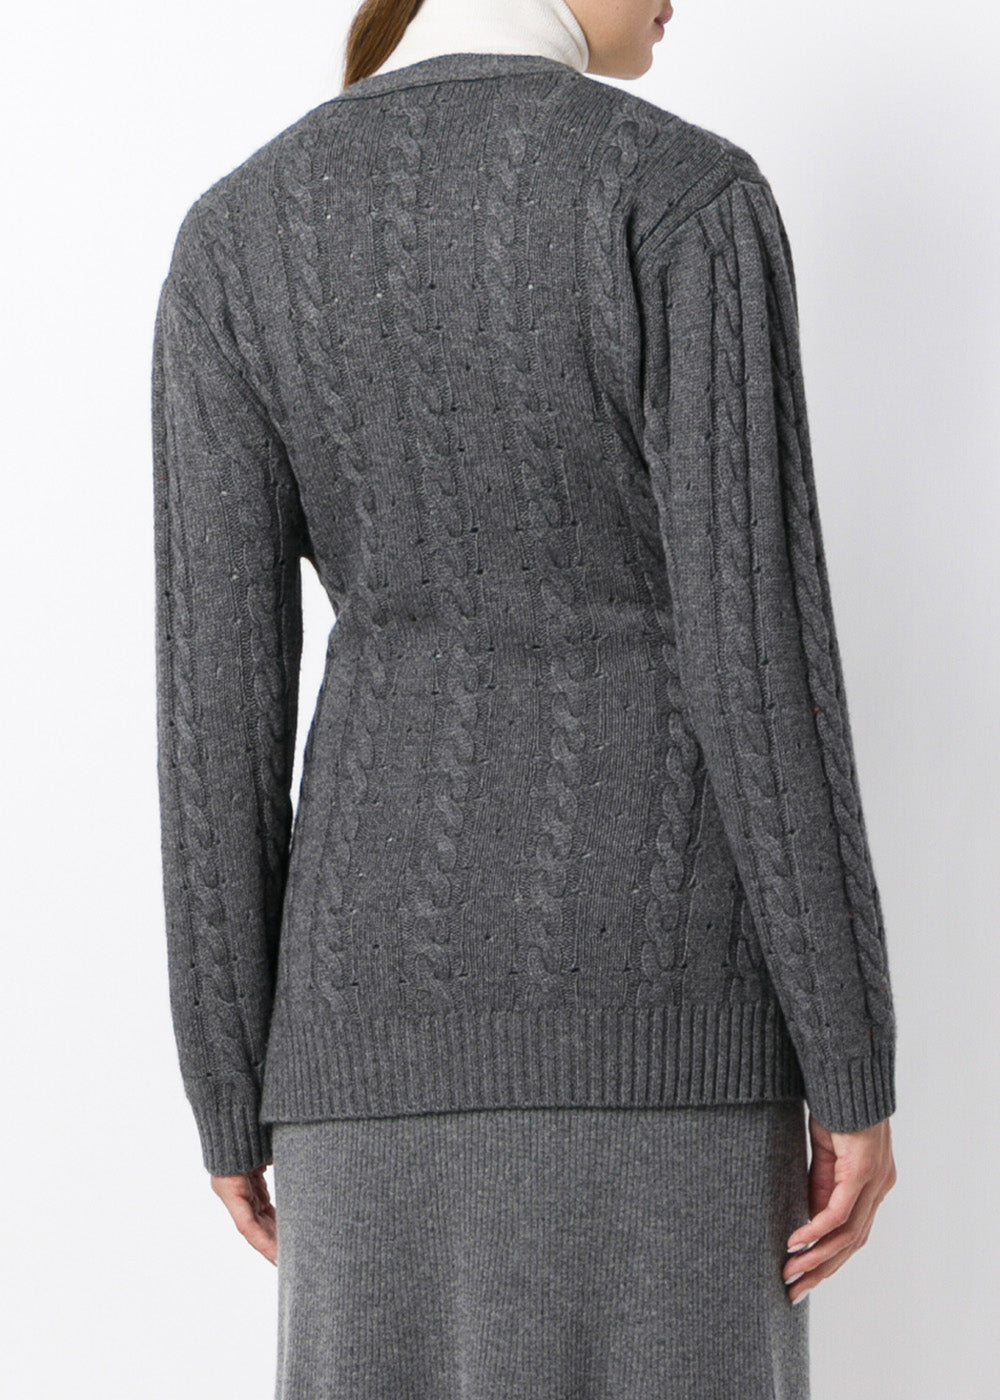 c36457bf3 London Cable Knit Grey Cashmere Cardigan – Cashmere In Love